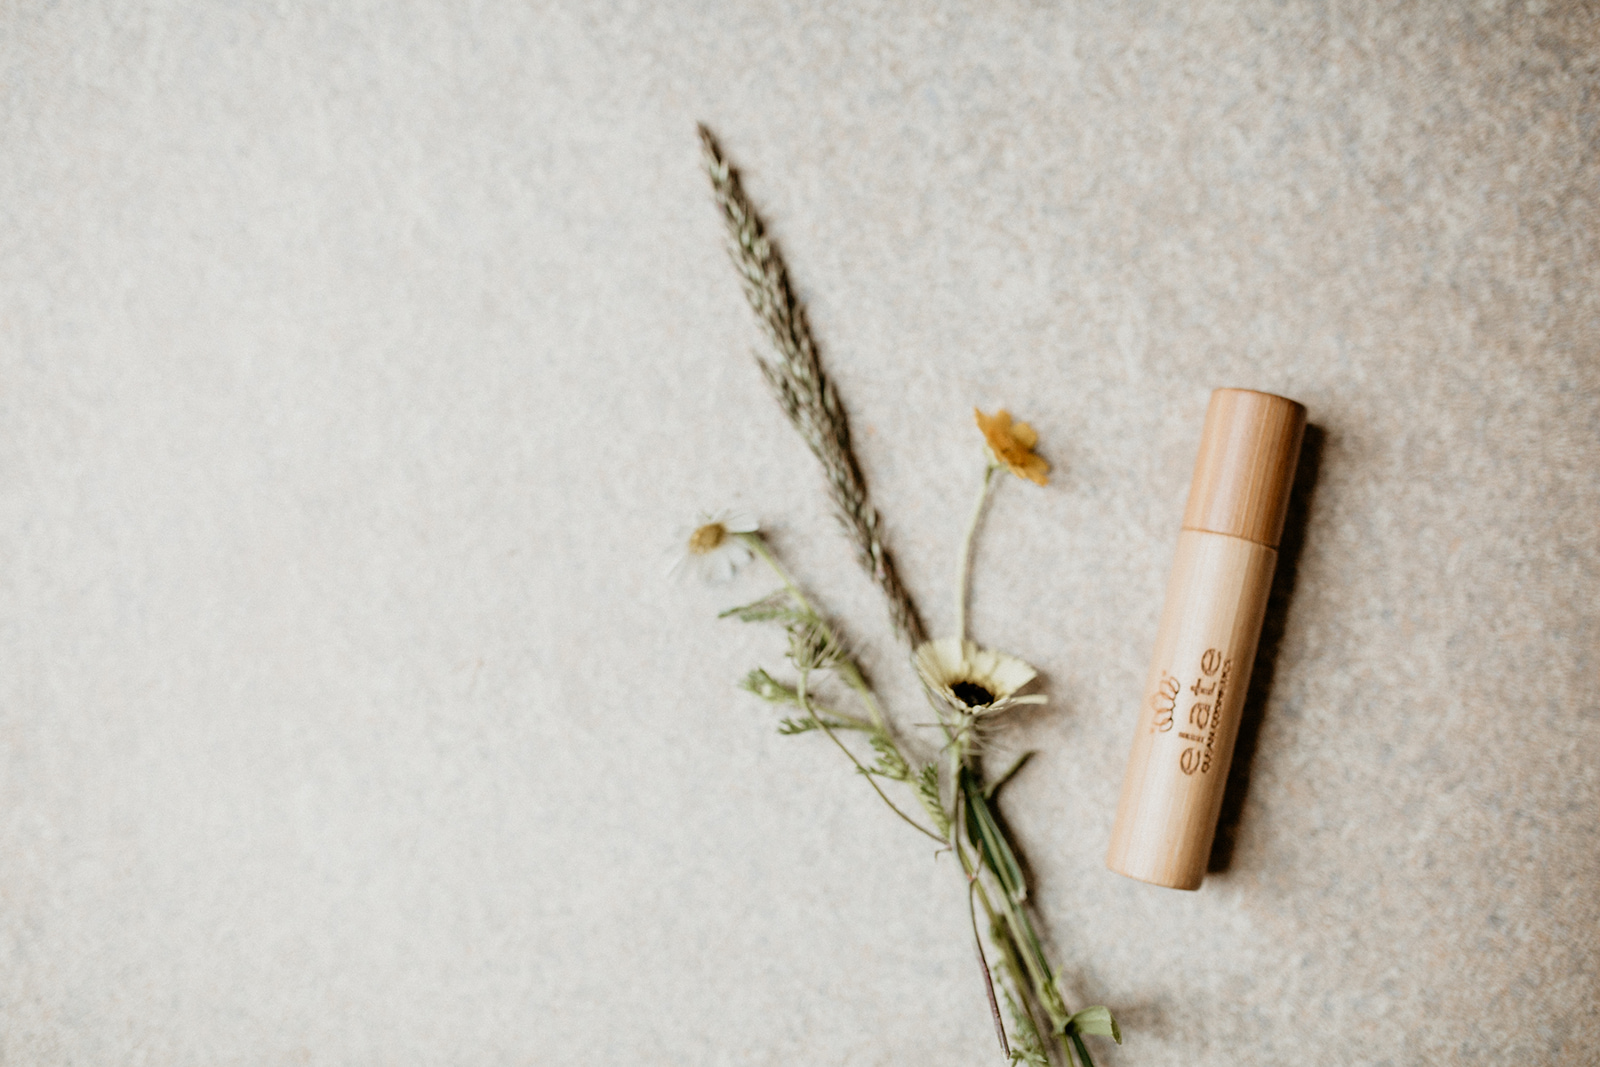 eco beauty, ethical beauty, cruelty free beauty, vegan beauty, zero waste beauty, sustainable beauty, organic beauty, natural beauty, ethical writers, elate cosmetics, neals yard, lily and lolo, kismet cosmetics, root mascara, hanami mascara, leotie lovely